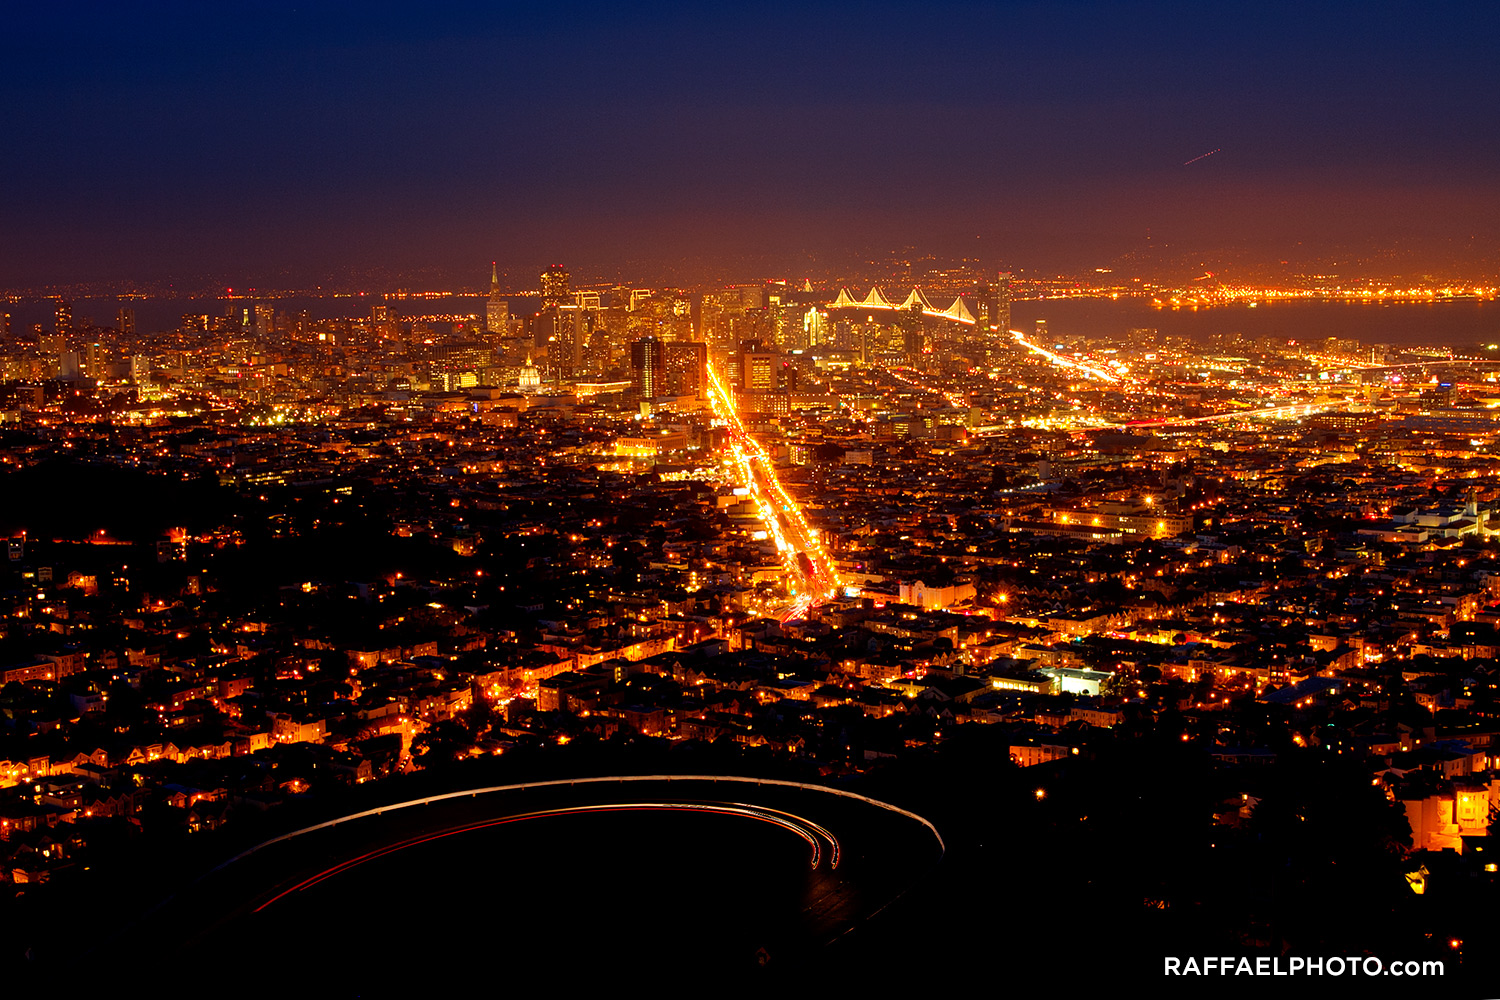 san_francisco_downtown_at_night_skyline_bay_bridge_raffael_dickreuter